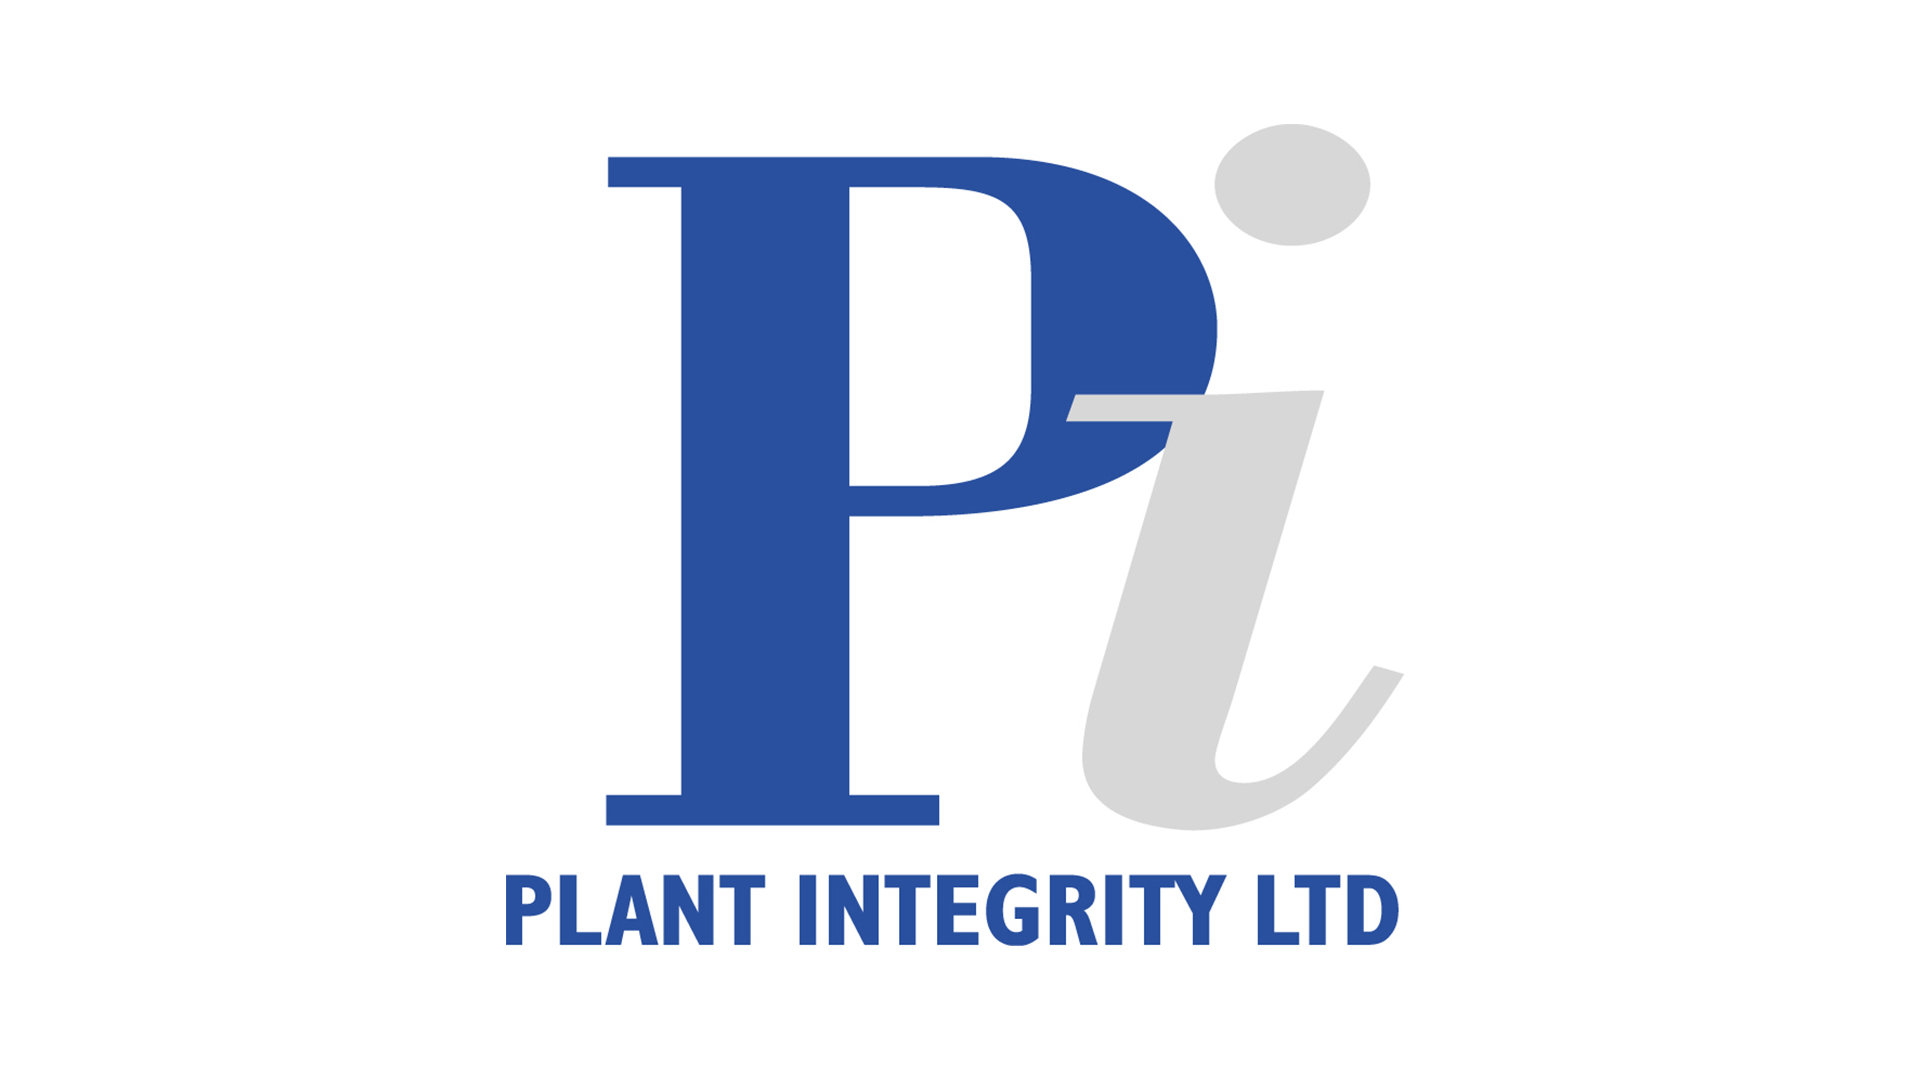 Plant Integrity